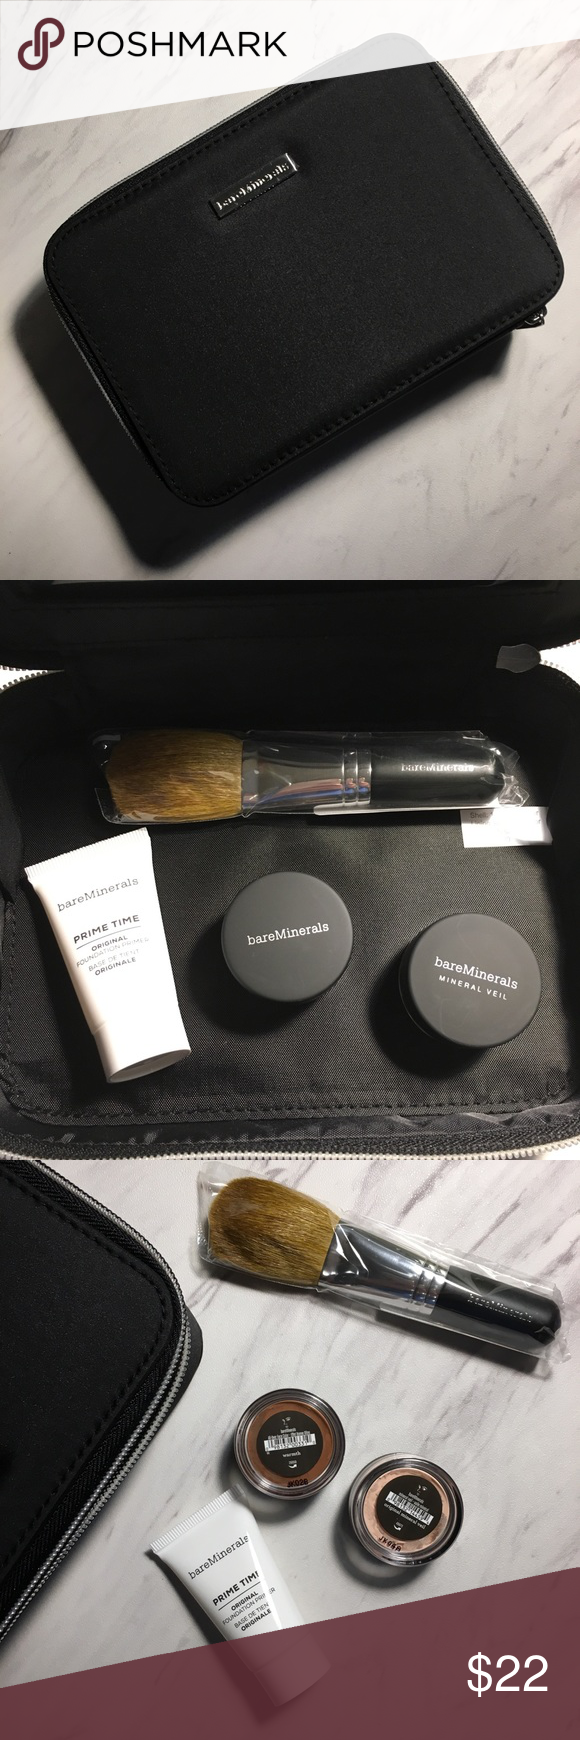 Bare minerals kit New Bare minerals kit........ comes with